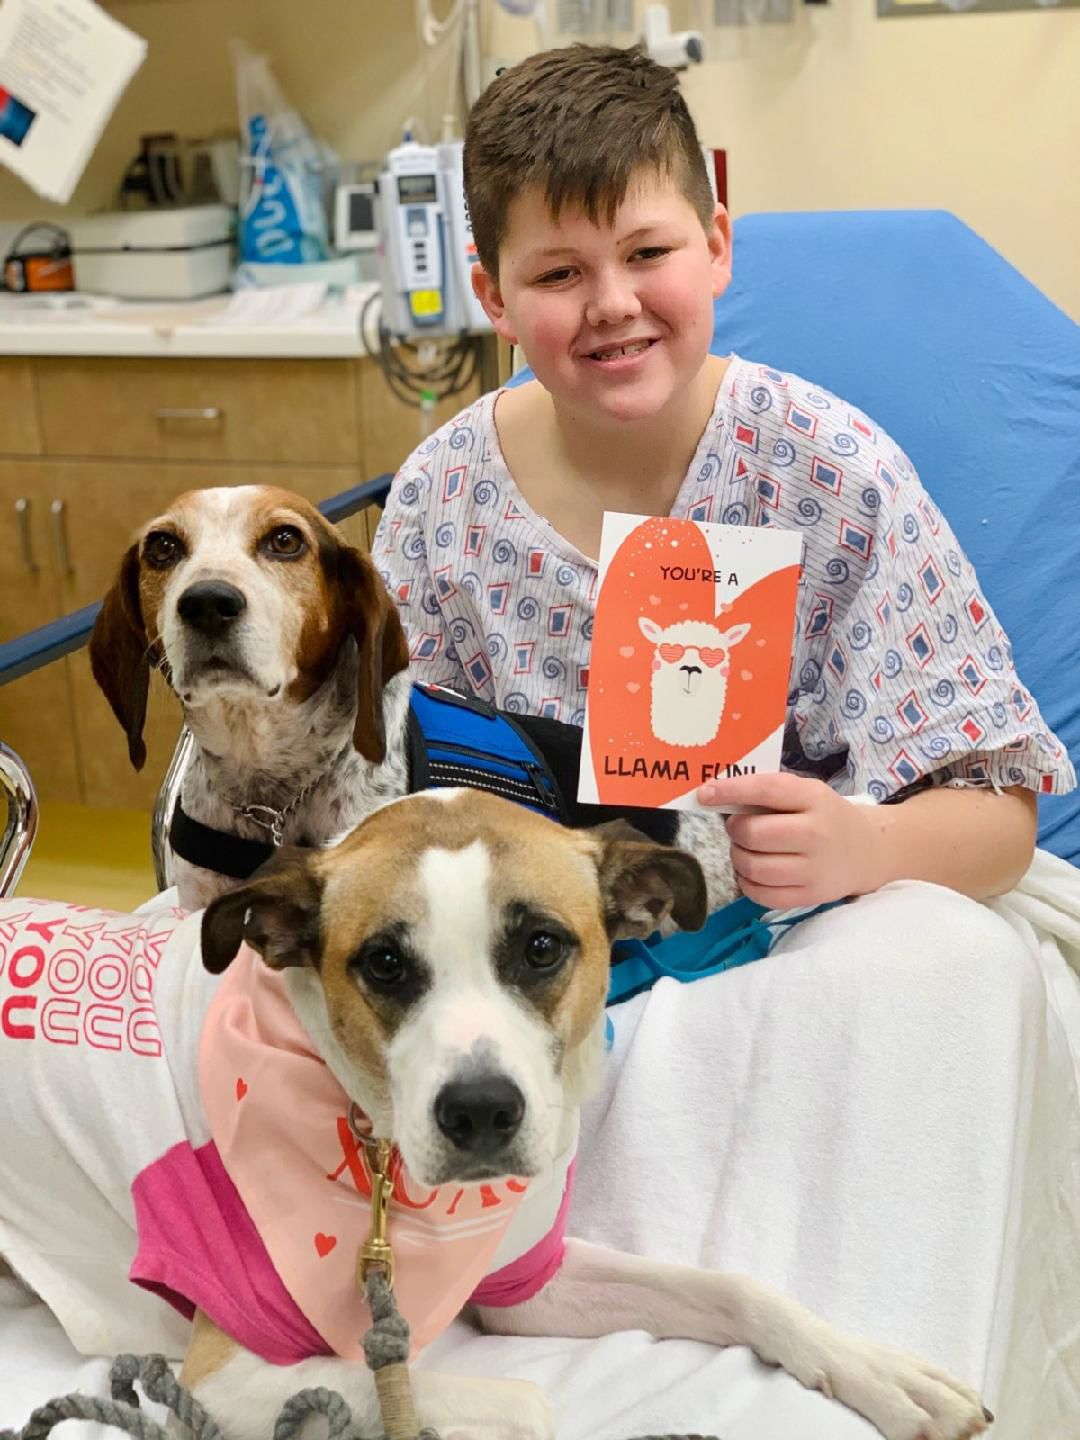 Patient at Norton Children's Hospital receives Valentine's Day cards on Feb. 14, 2020